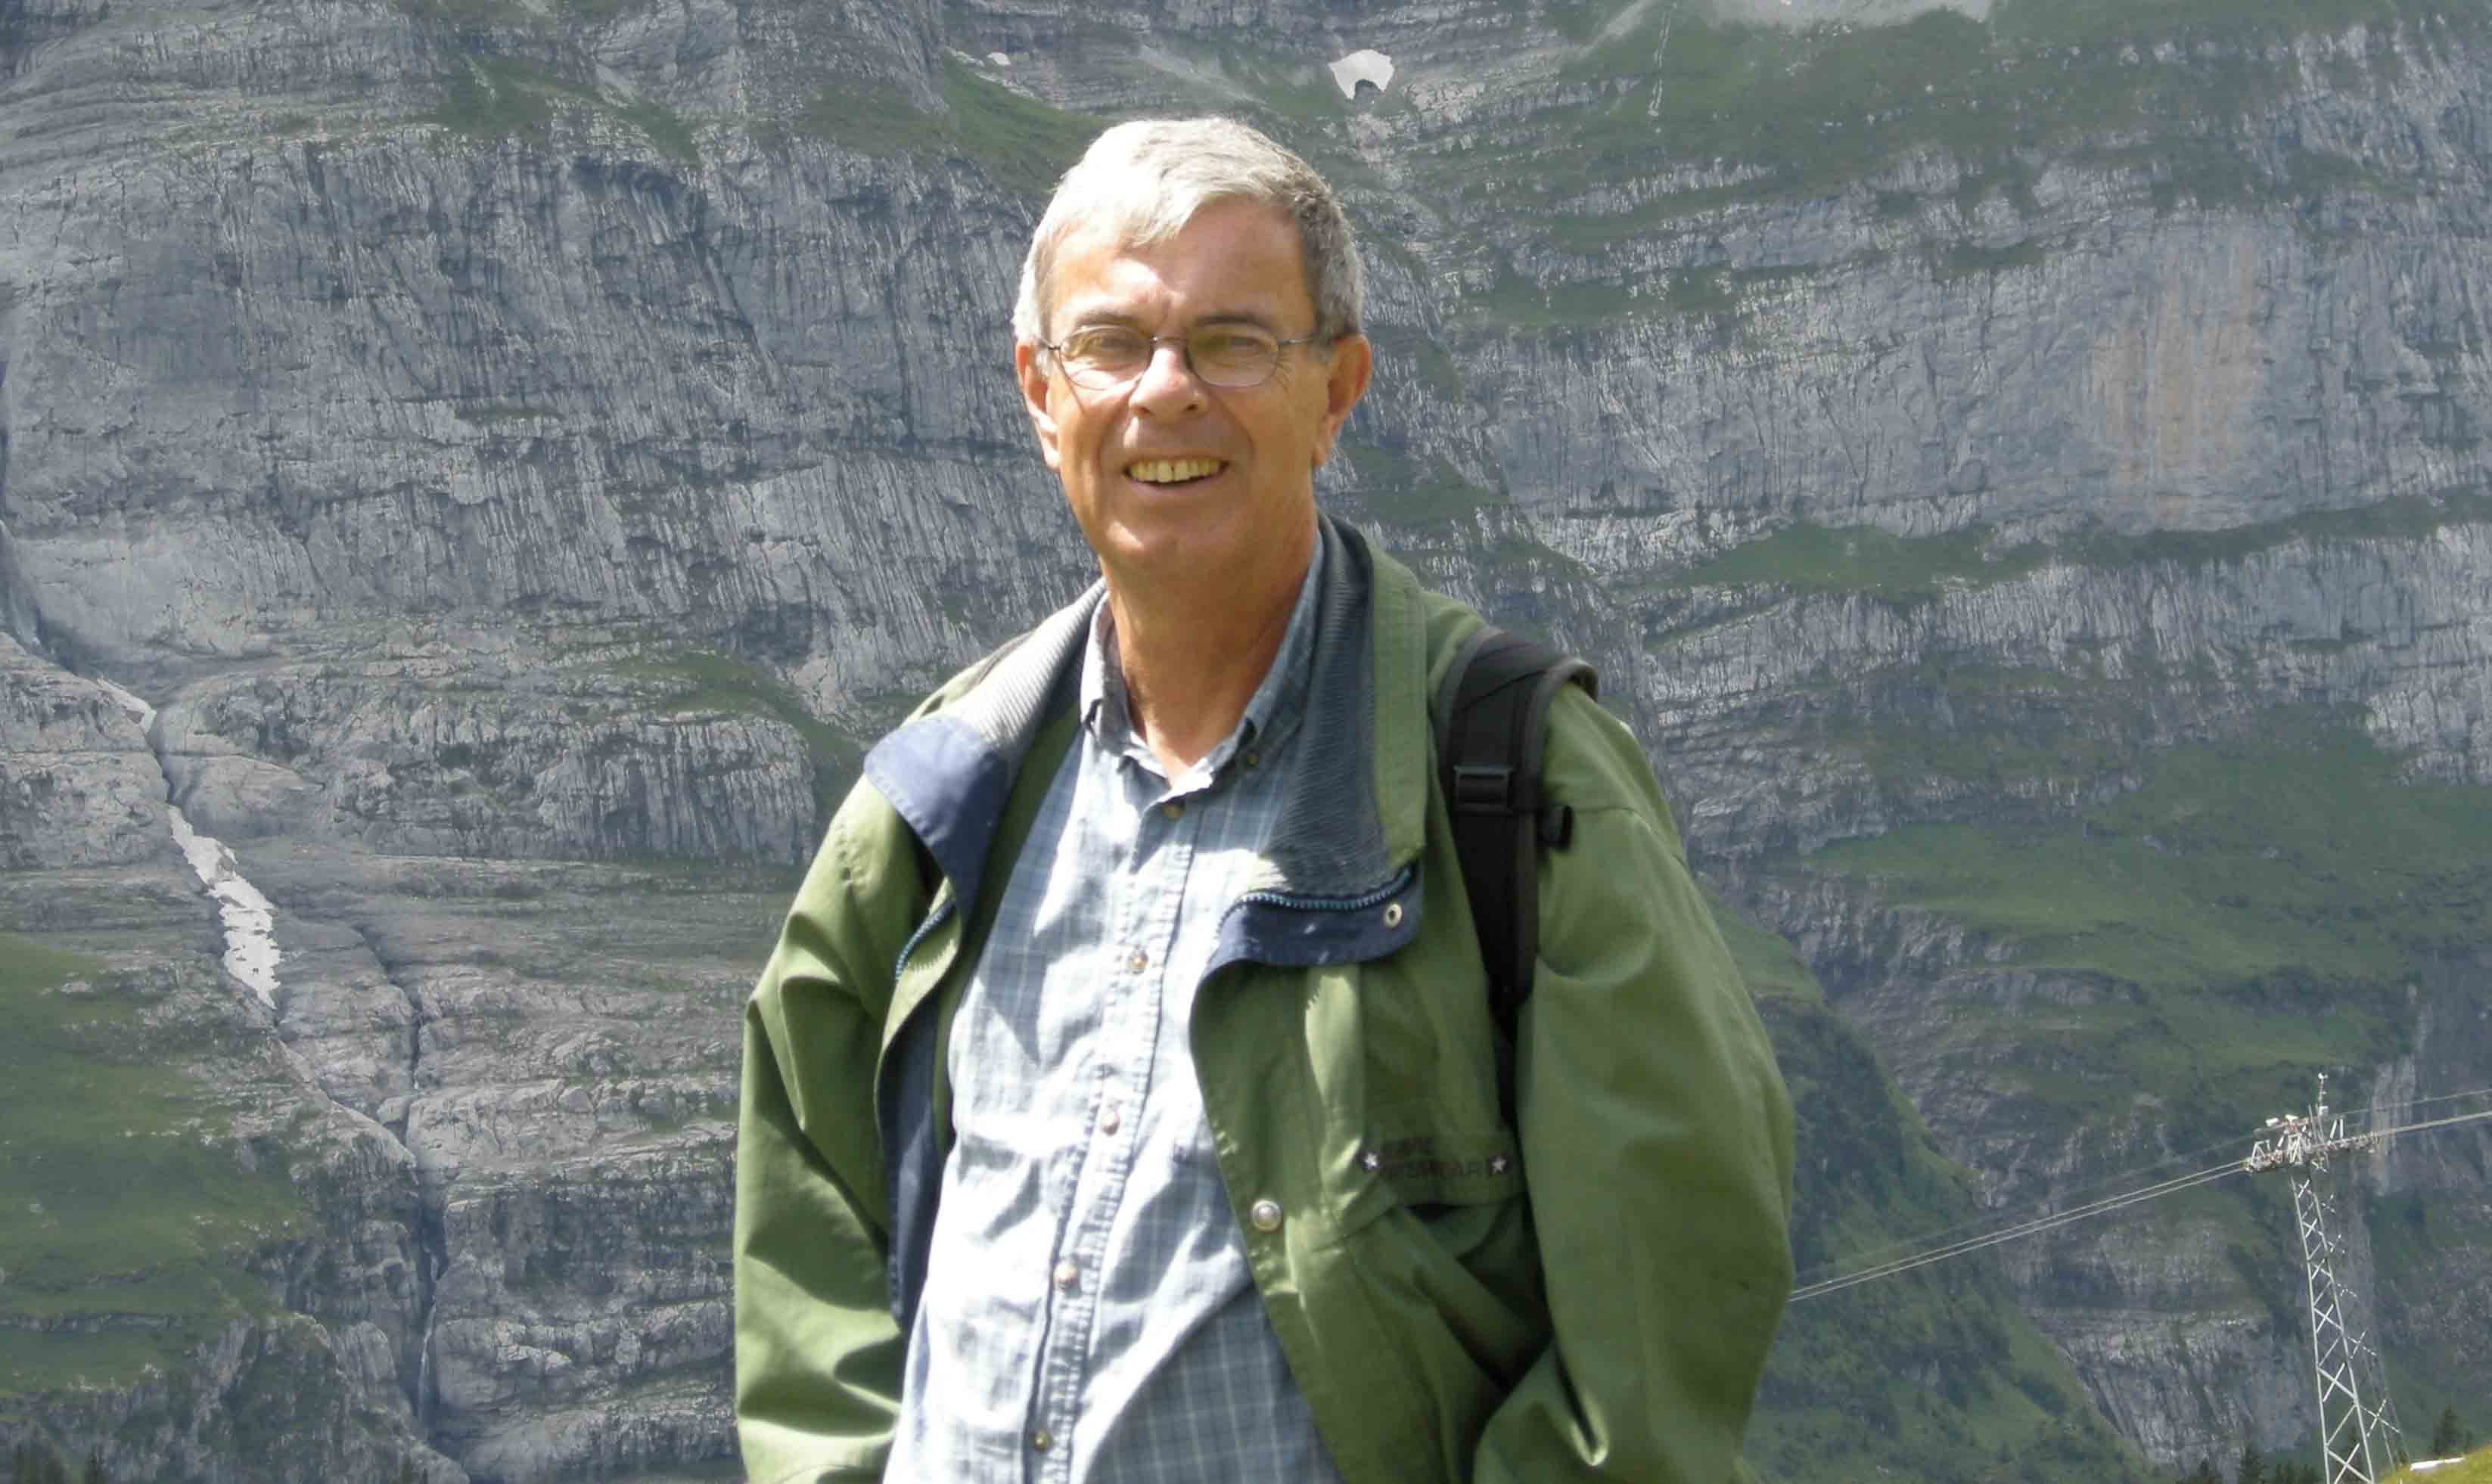 Our Self-Written Obituaries – Roger Choate, Stockholm